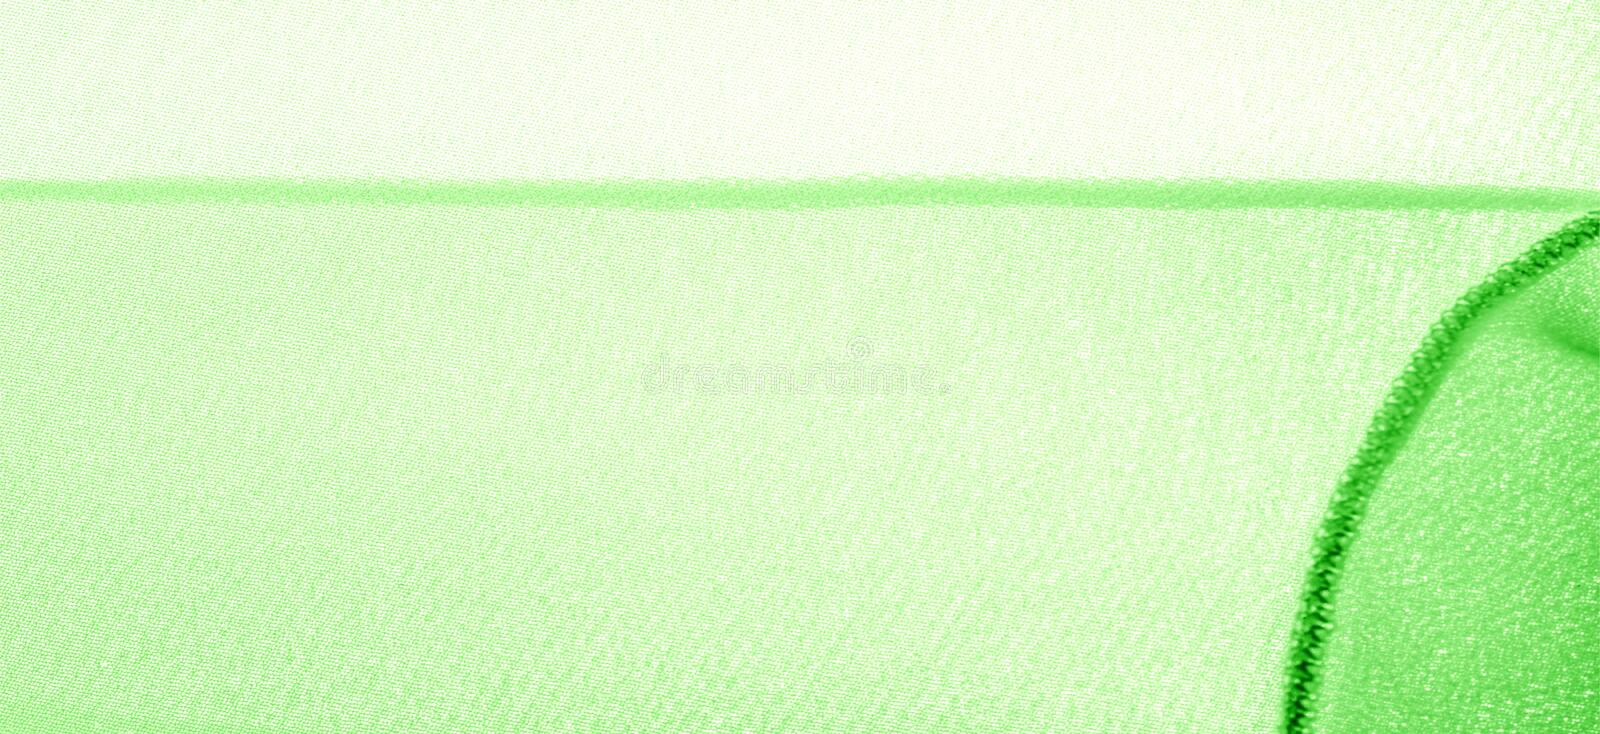 Texture background pattern. Green silk fabric with a subtle matte sheen. It is perfect for your design, accents, wallpapers,. Posters and postcards royalty free stock photography